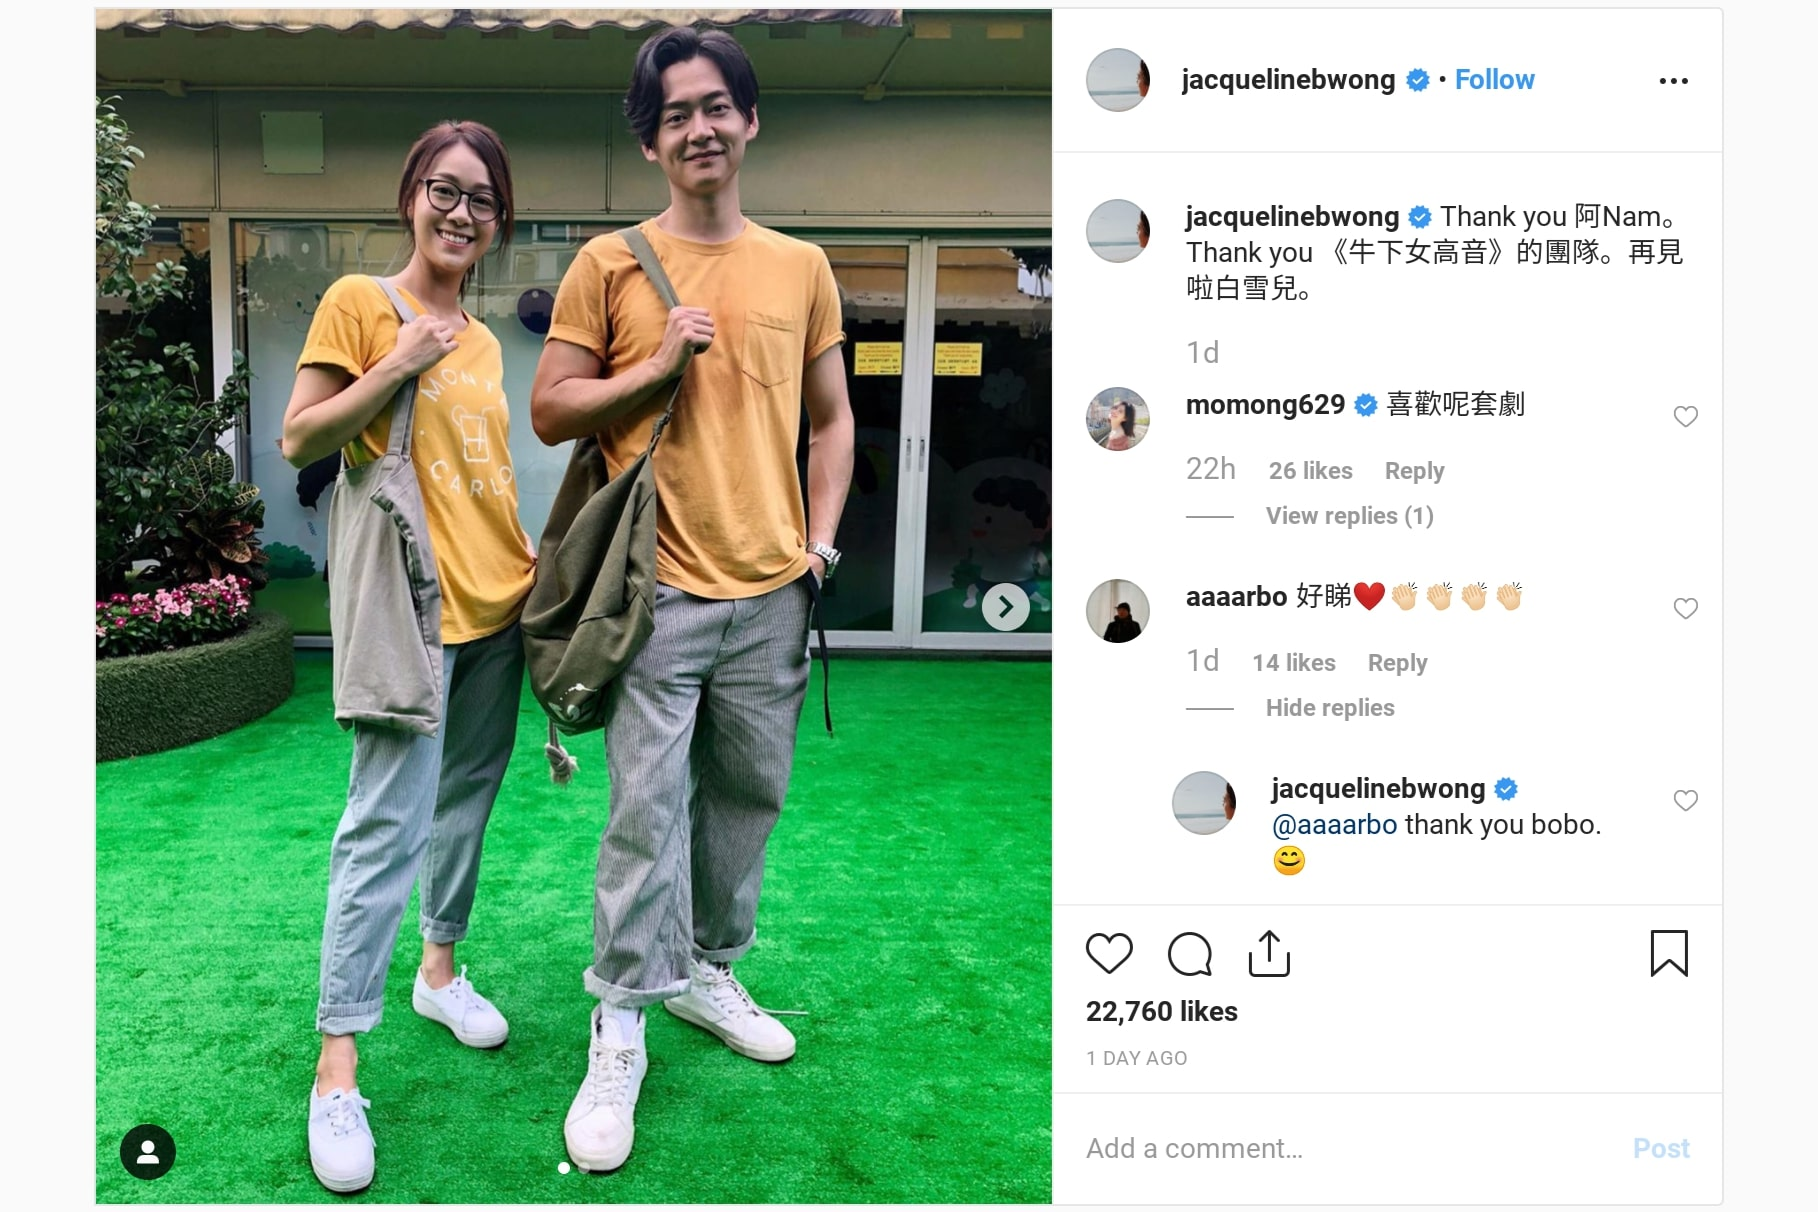 Jacqueline Wong's Instagram post